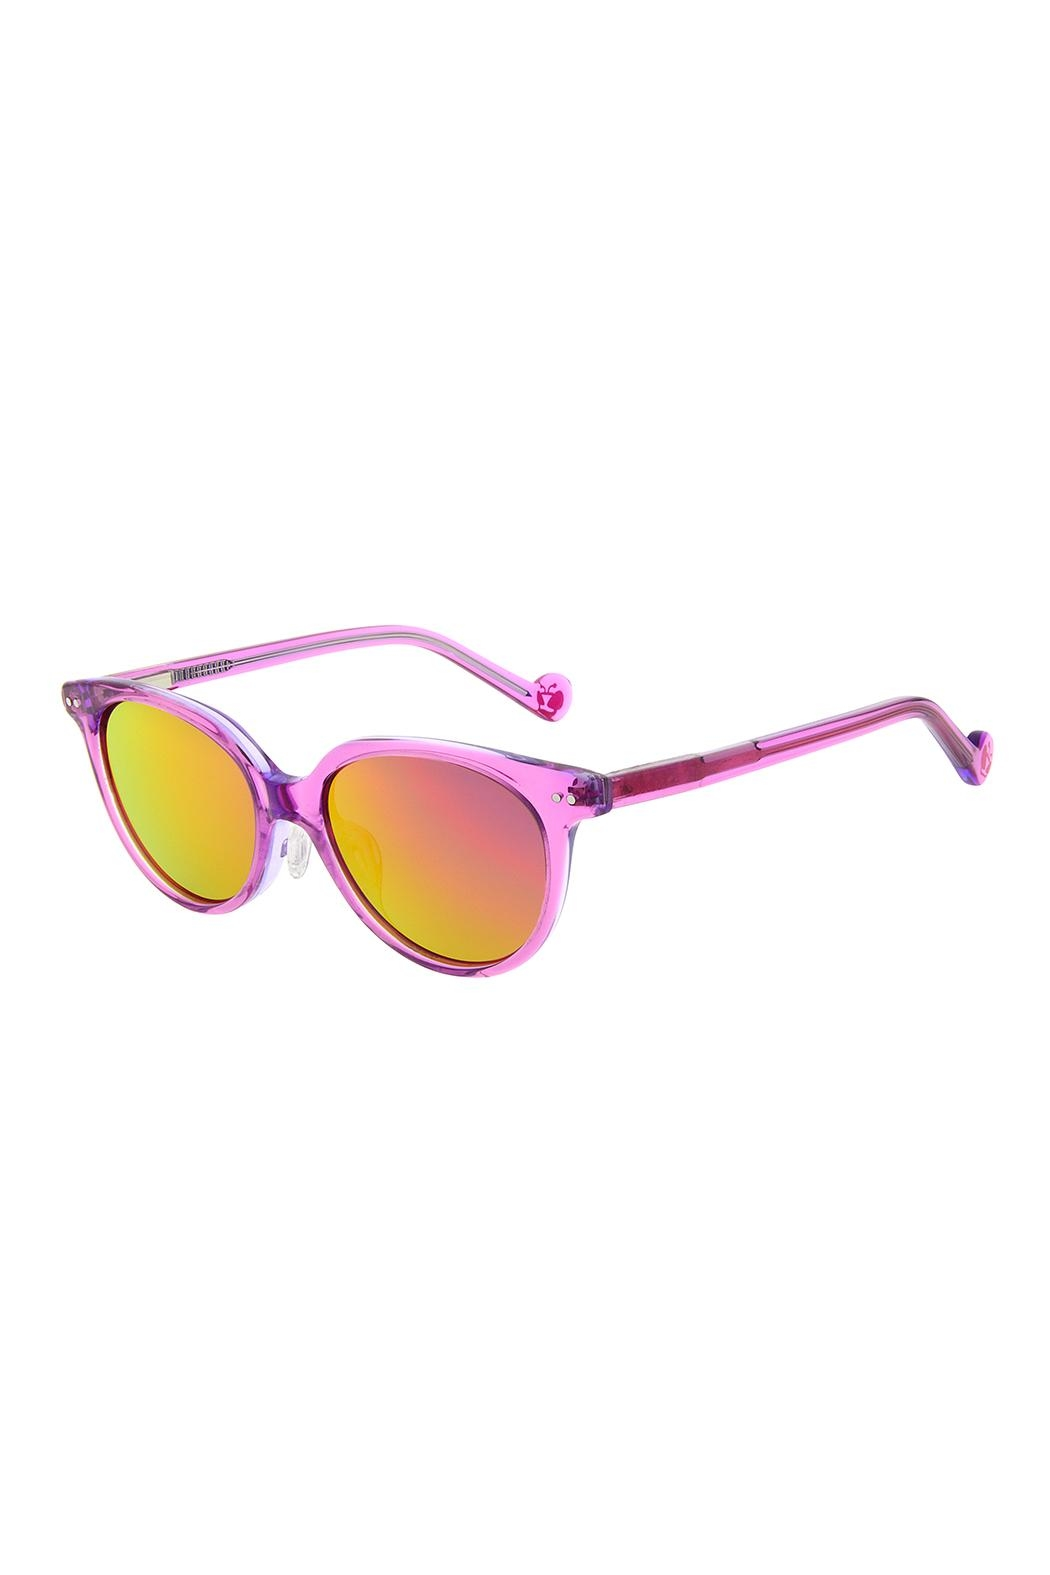 ZooBug Girls Purple Sunglasses - Main Image